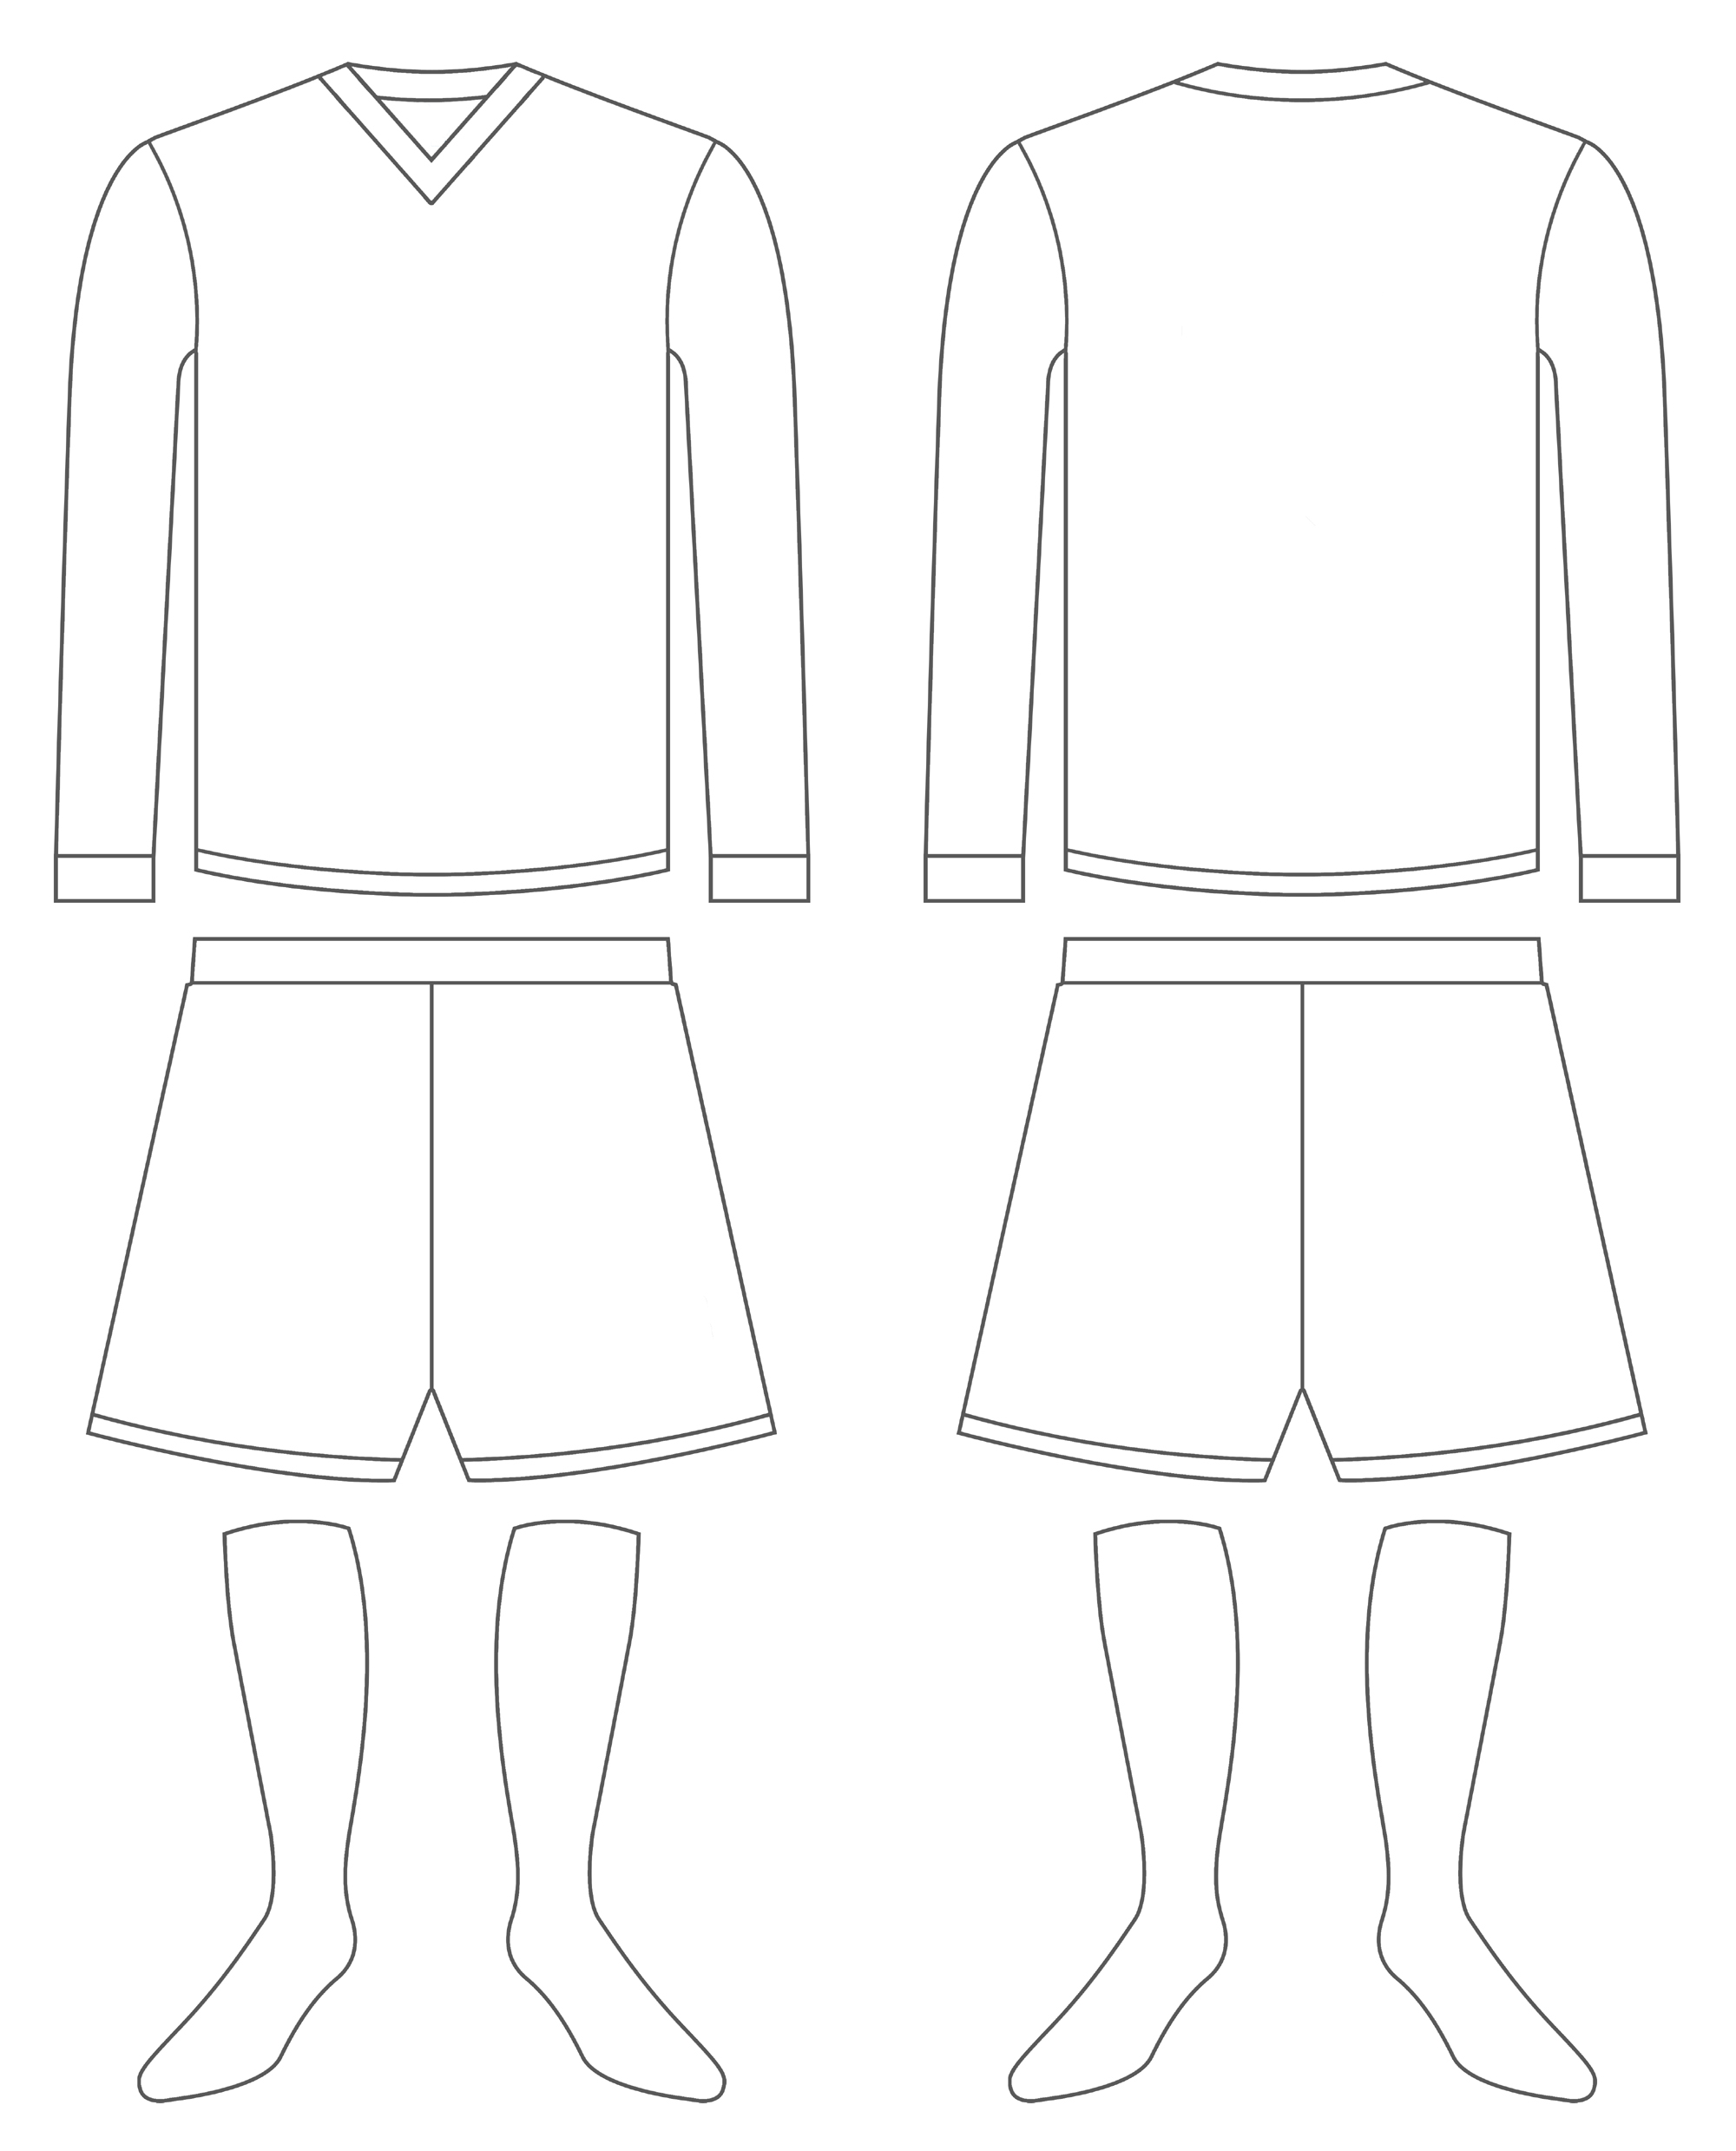 Plain Football Jersey Coloring Pages Printable. Plain